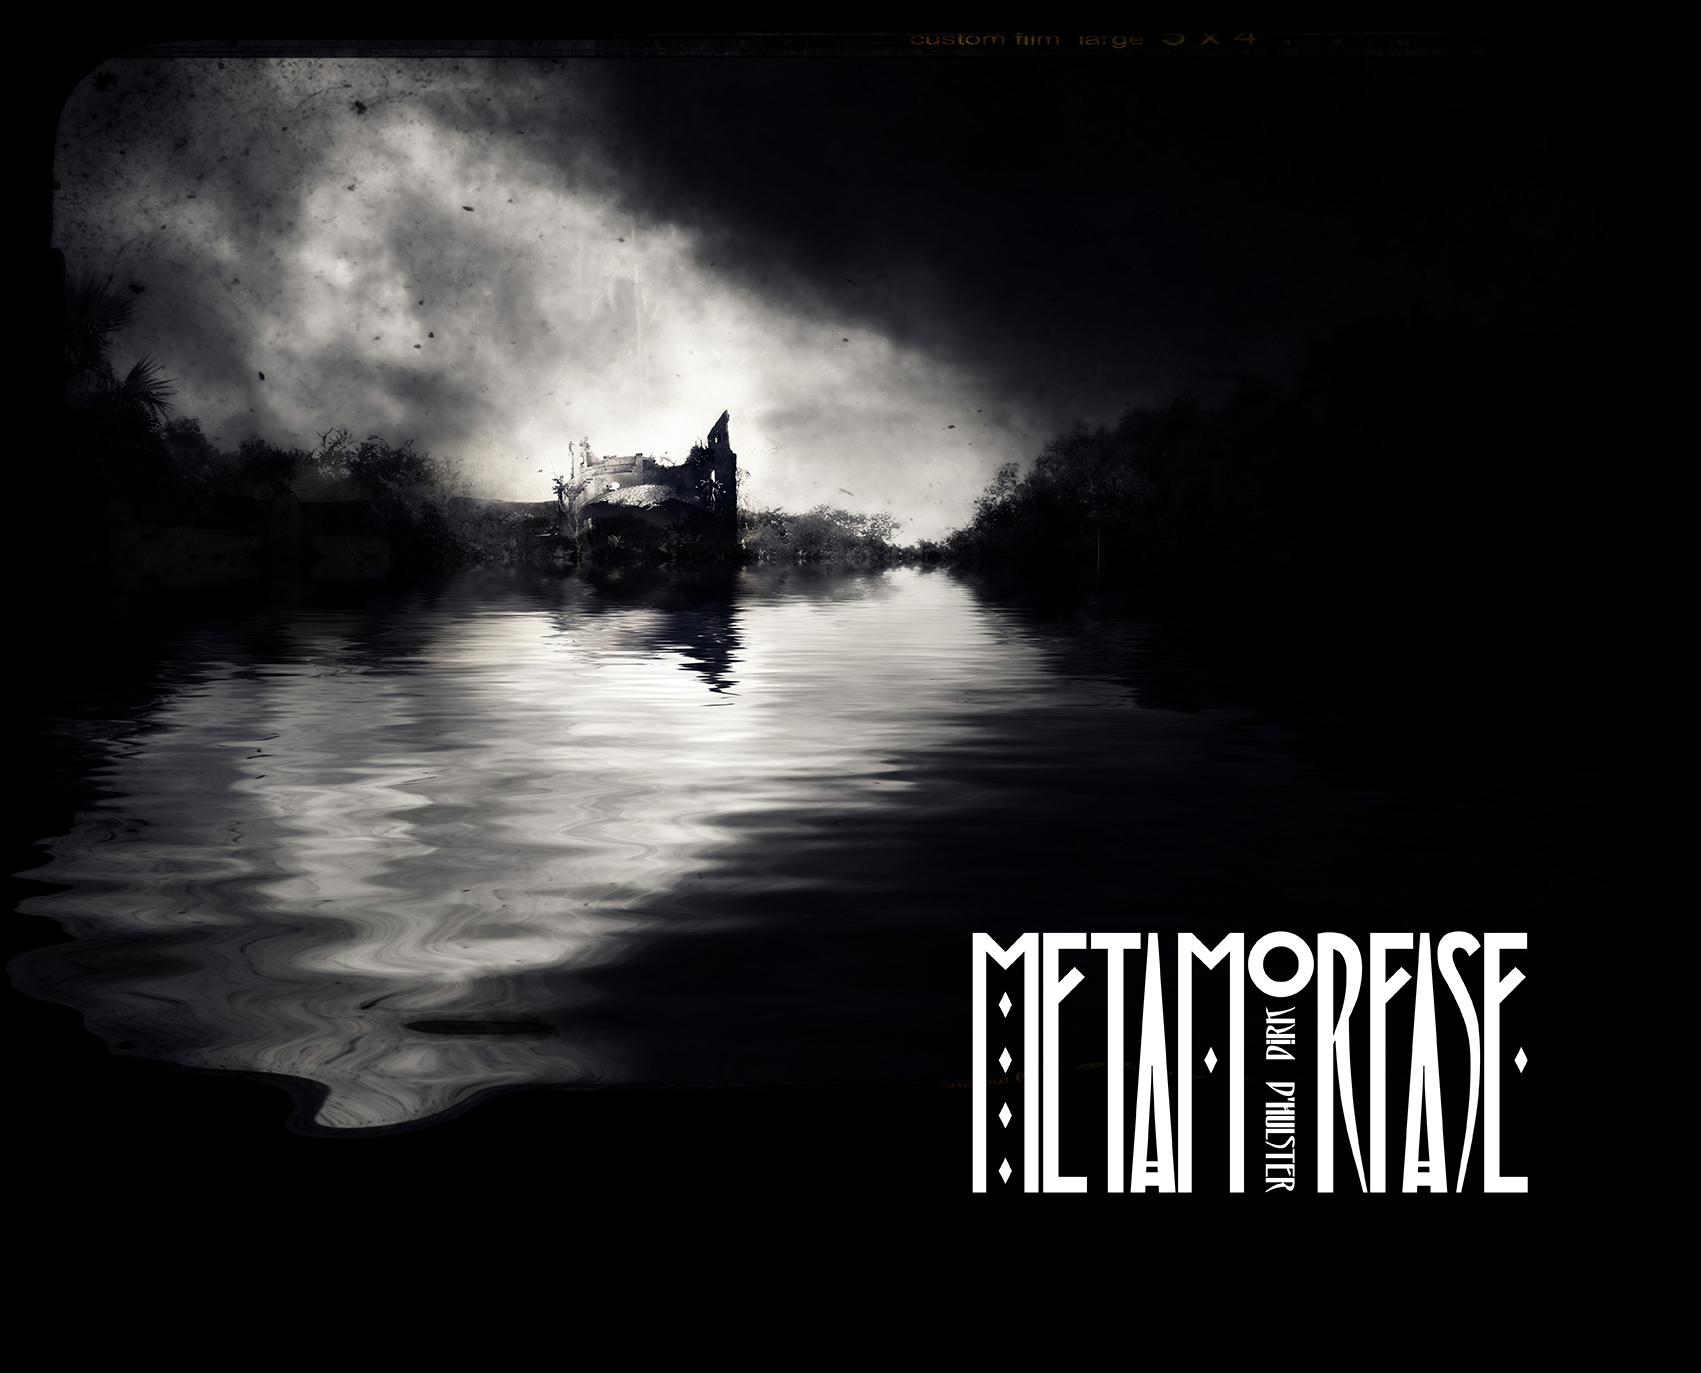 metamorfase_comming_soon_image